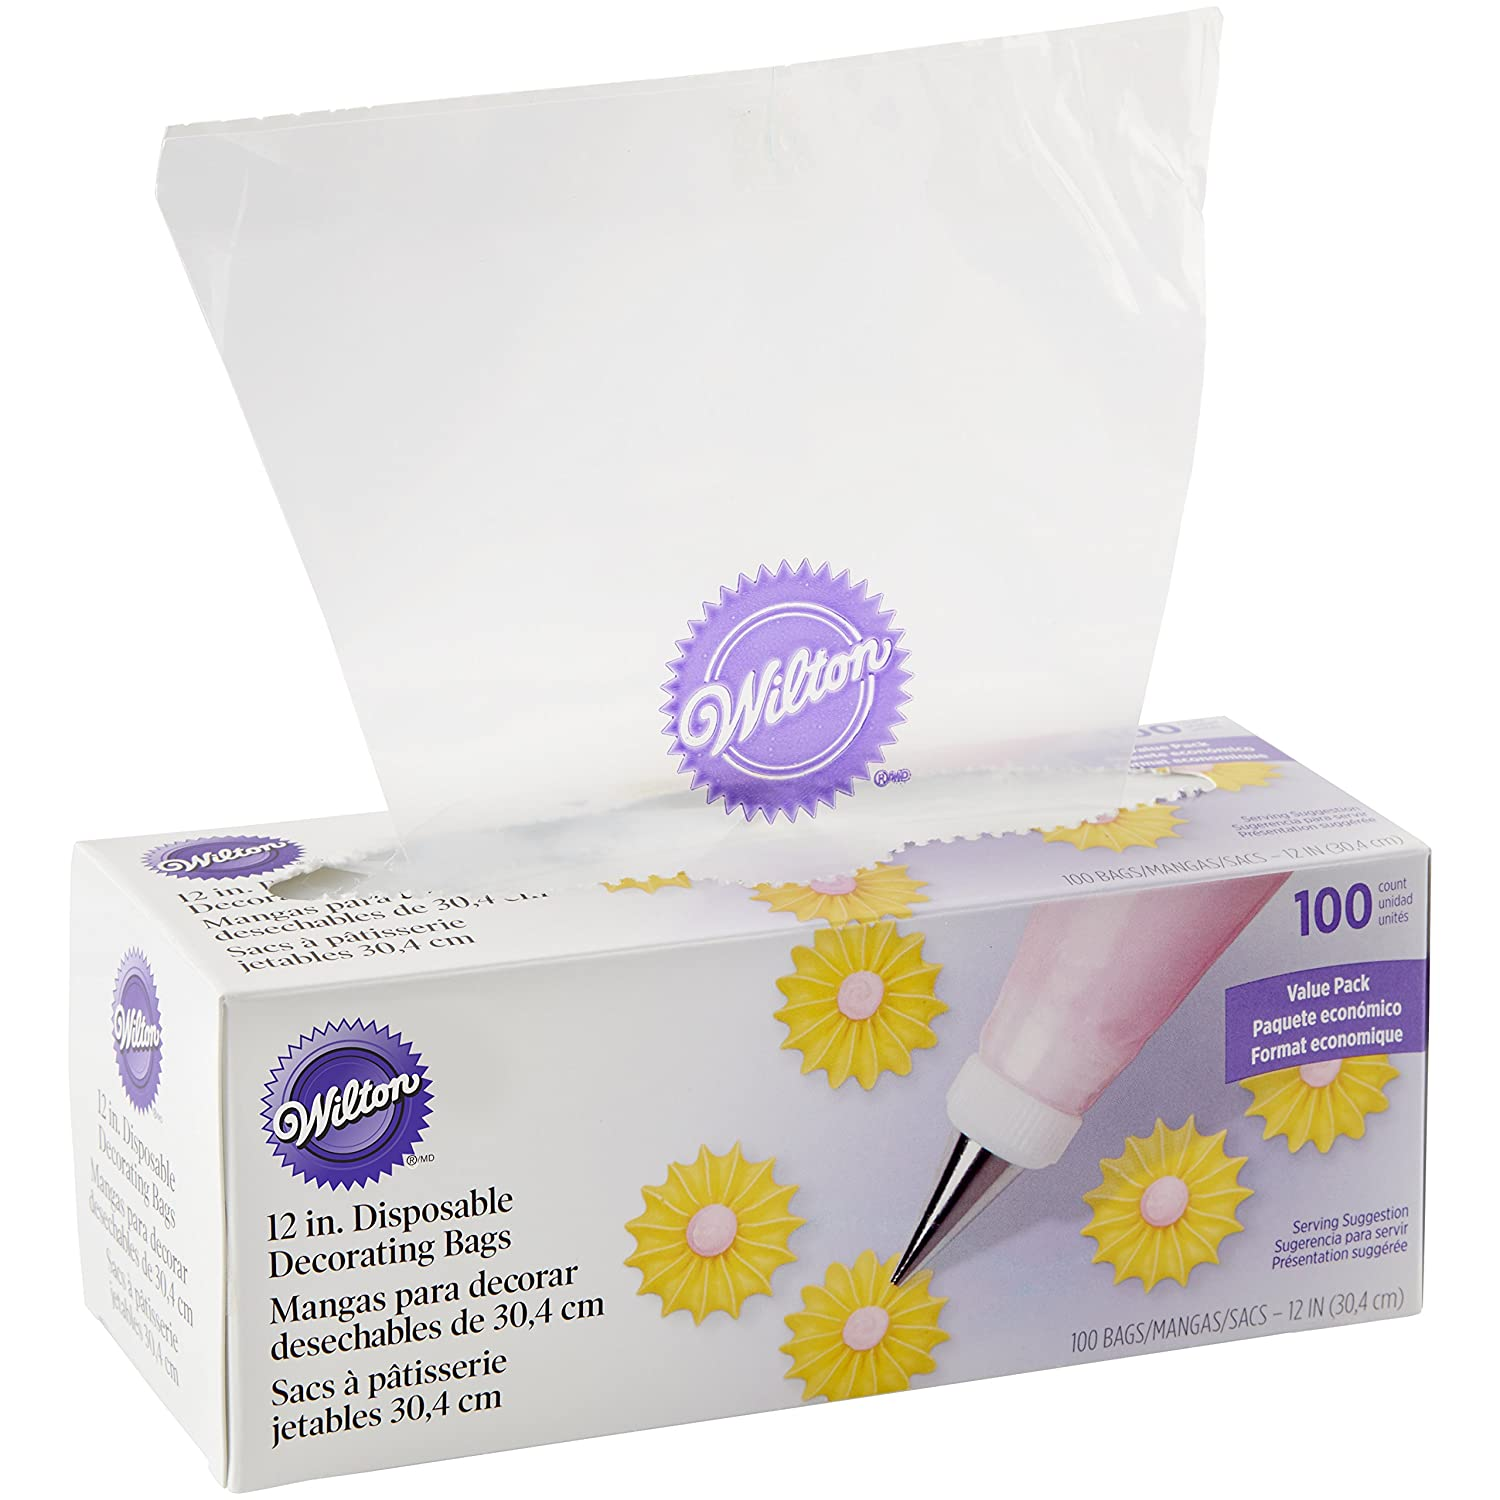 Wilton 100pack Disposable Decorating Bags Ebay